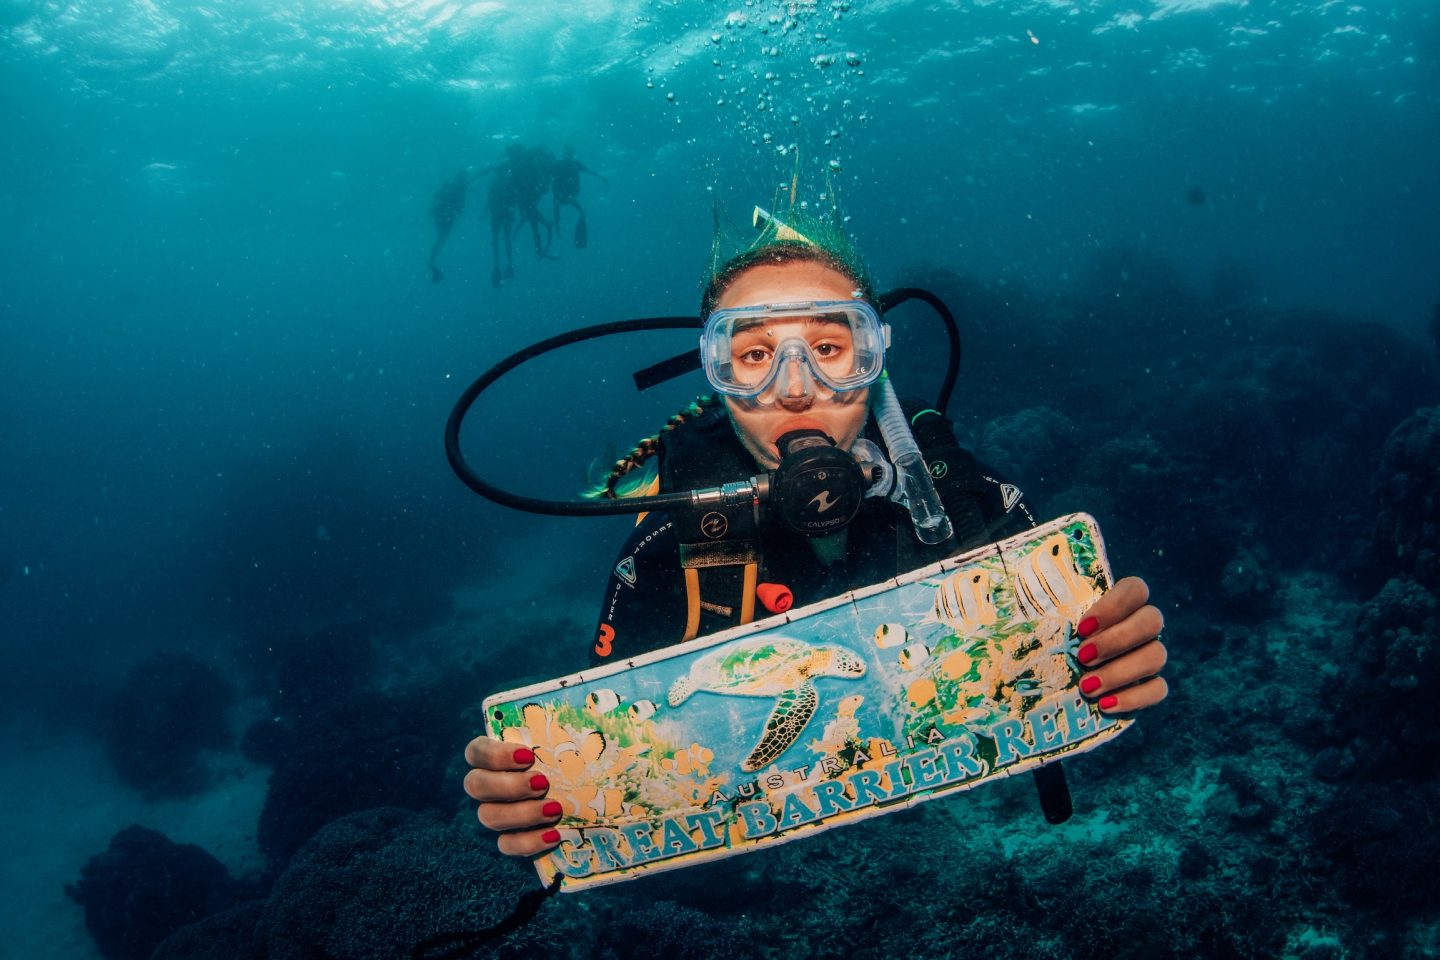 Posing with a Great Barrier Reef sign underwater while scuba diving in the Great Barrier Reef.